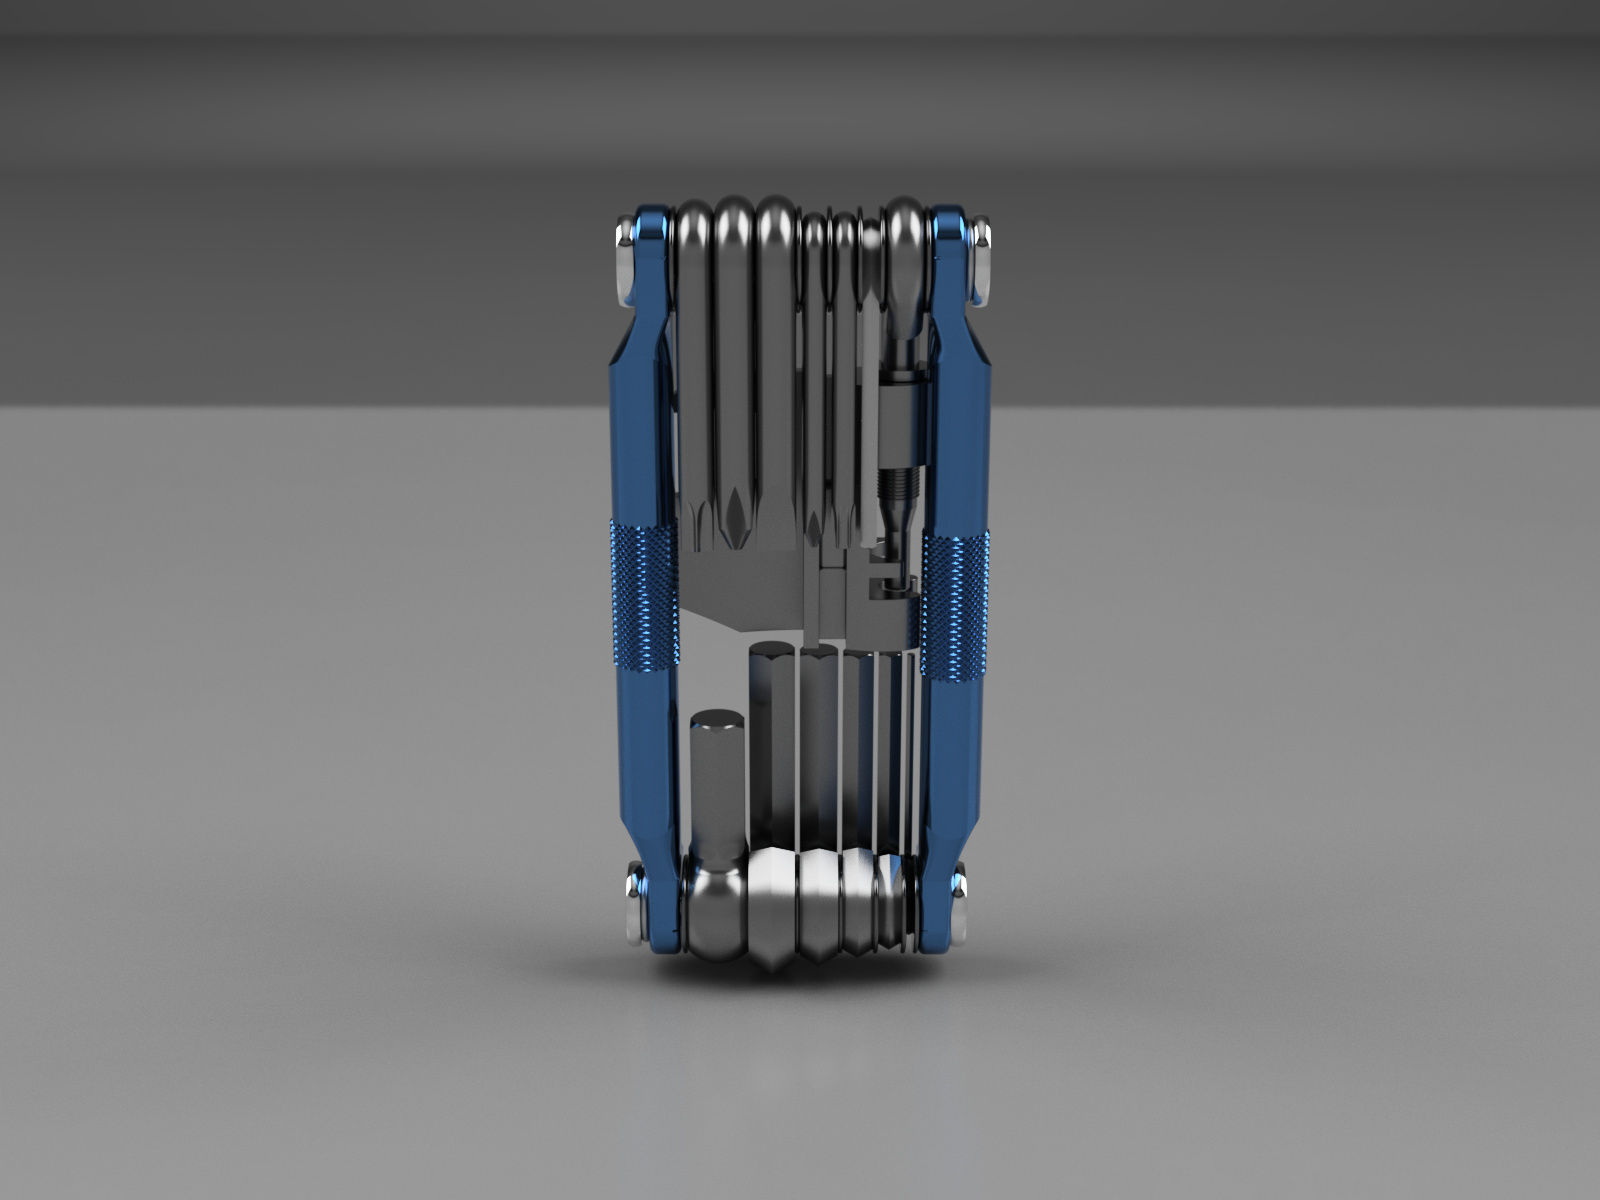 Bike multi tool autodesk online gallery for Online rendering tool